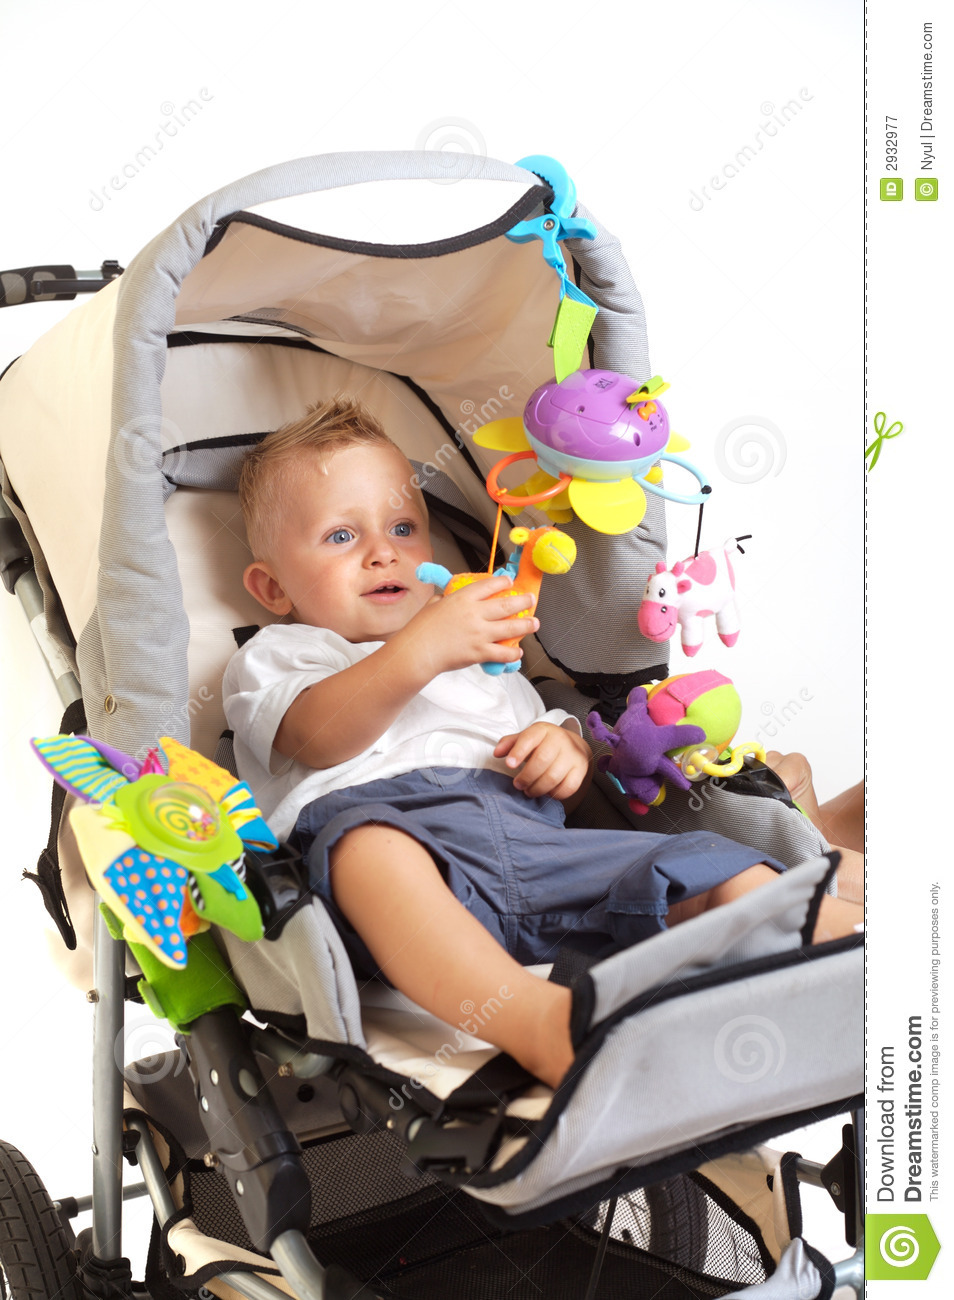 Happy Baby In Stroller Royalty Free Stock Photography - Image: 2932977